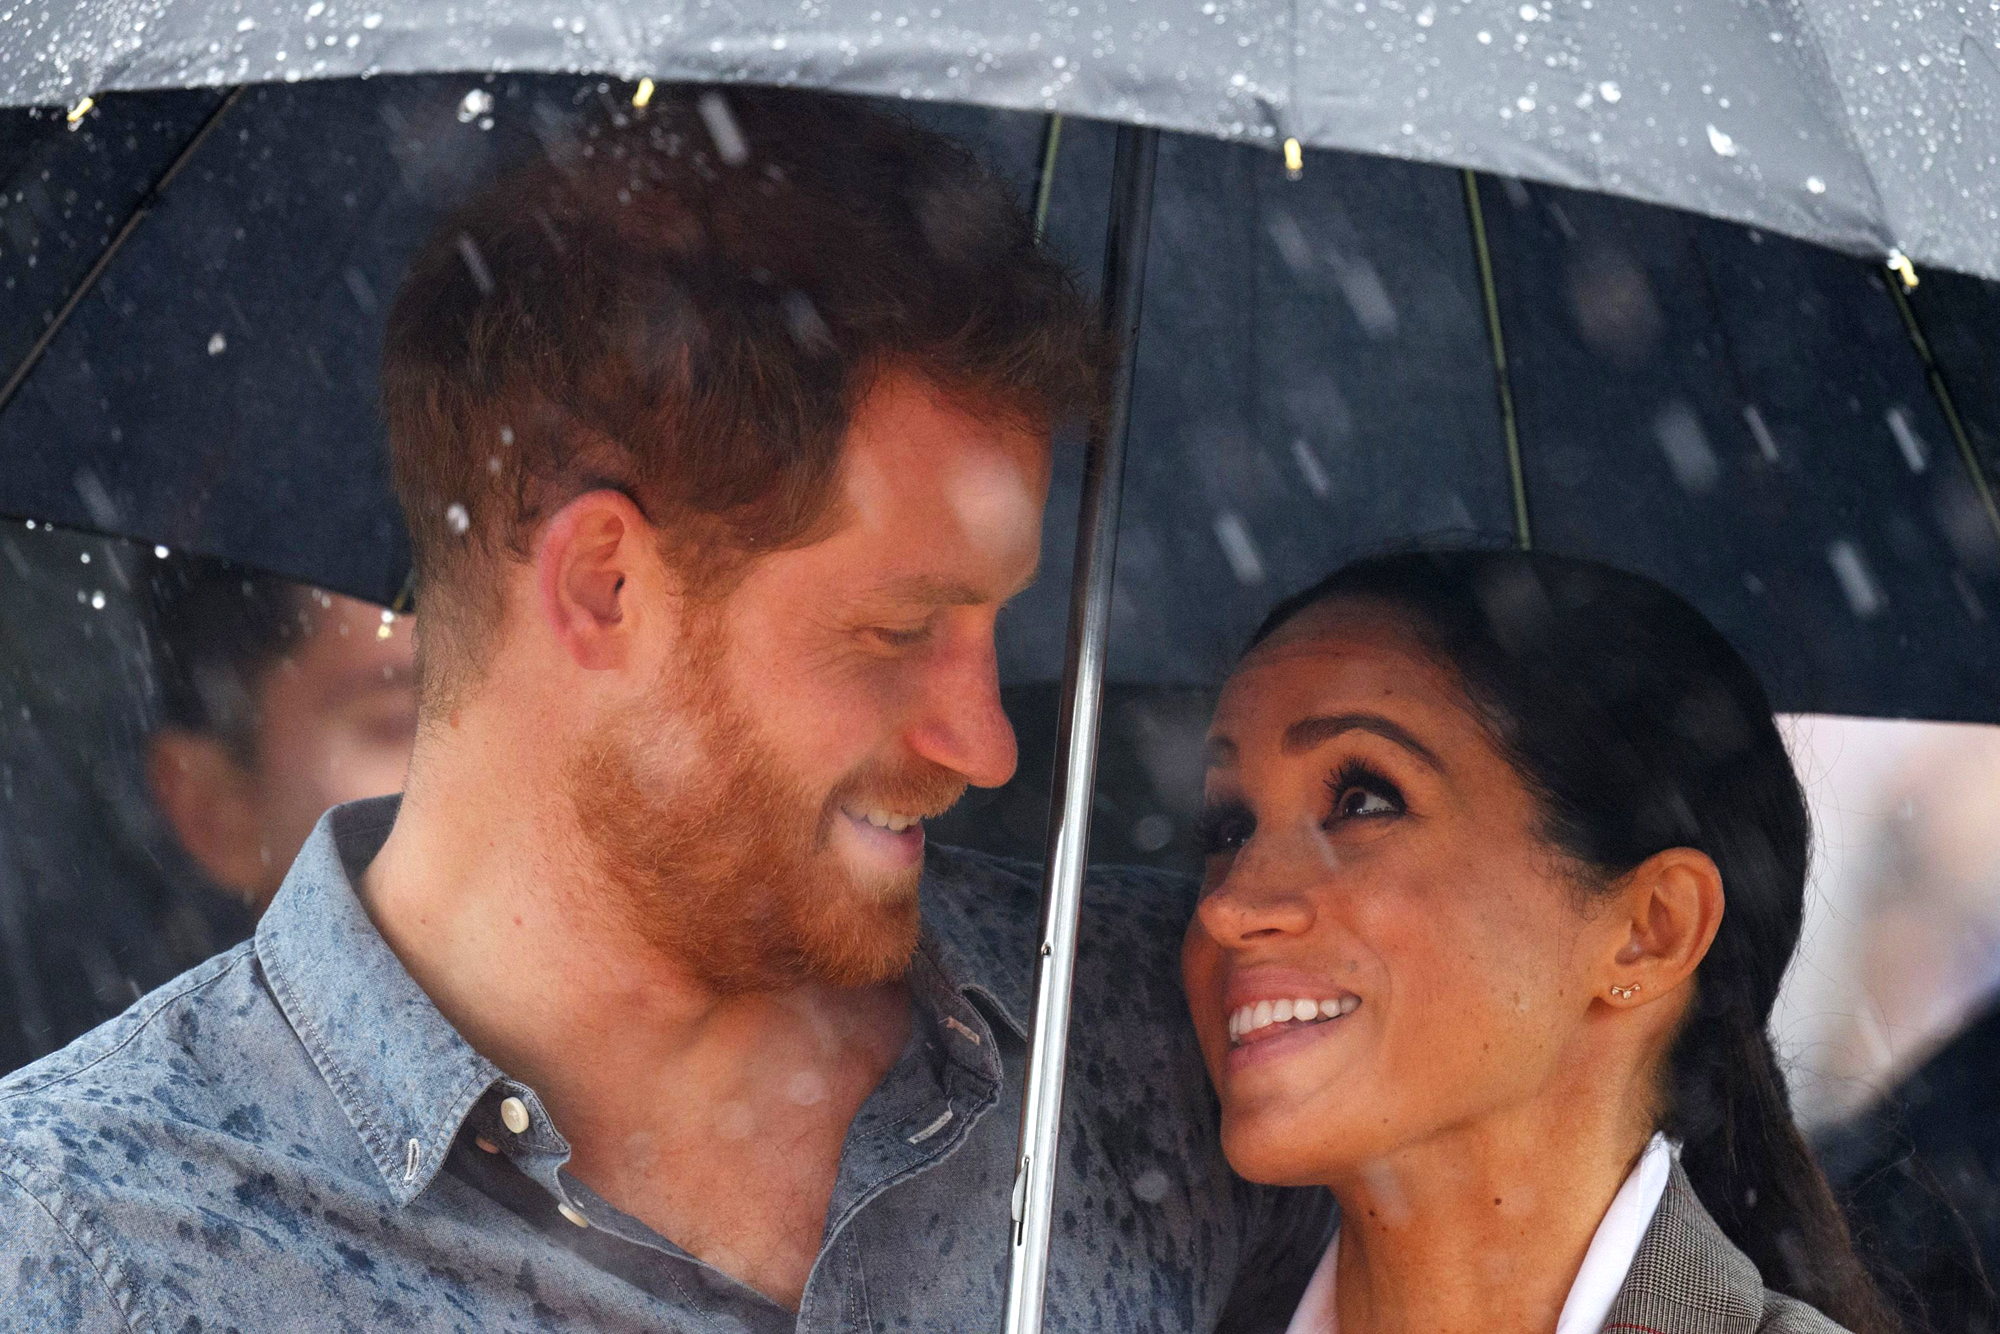 royal miracle rain falls on prince harry and meghan markle s tour people com https people com royals rain falls prince harry meghan markle tour after visiting drought stricken farm